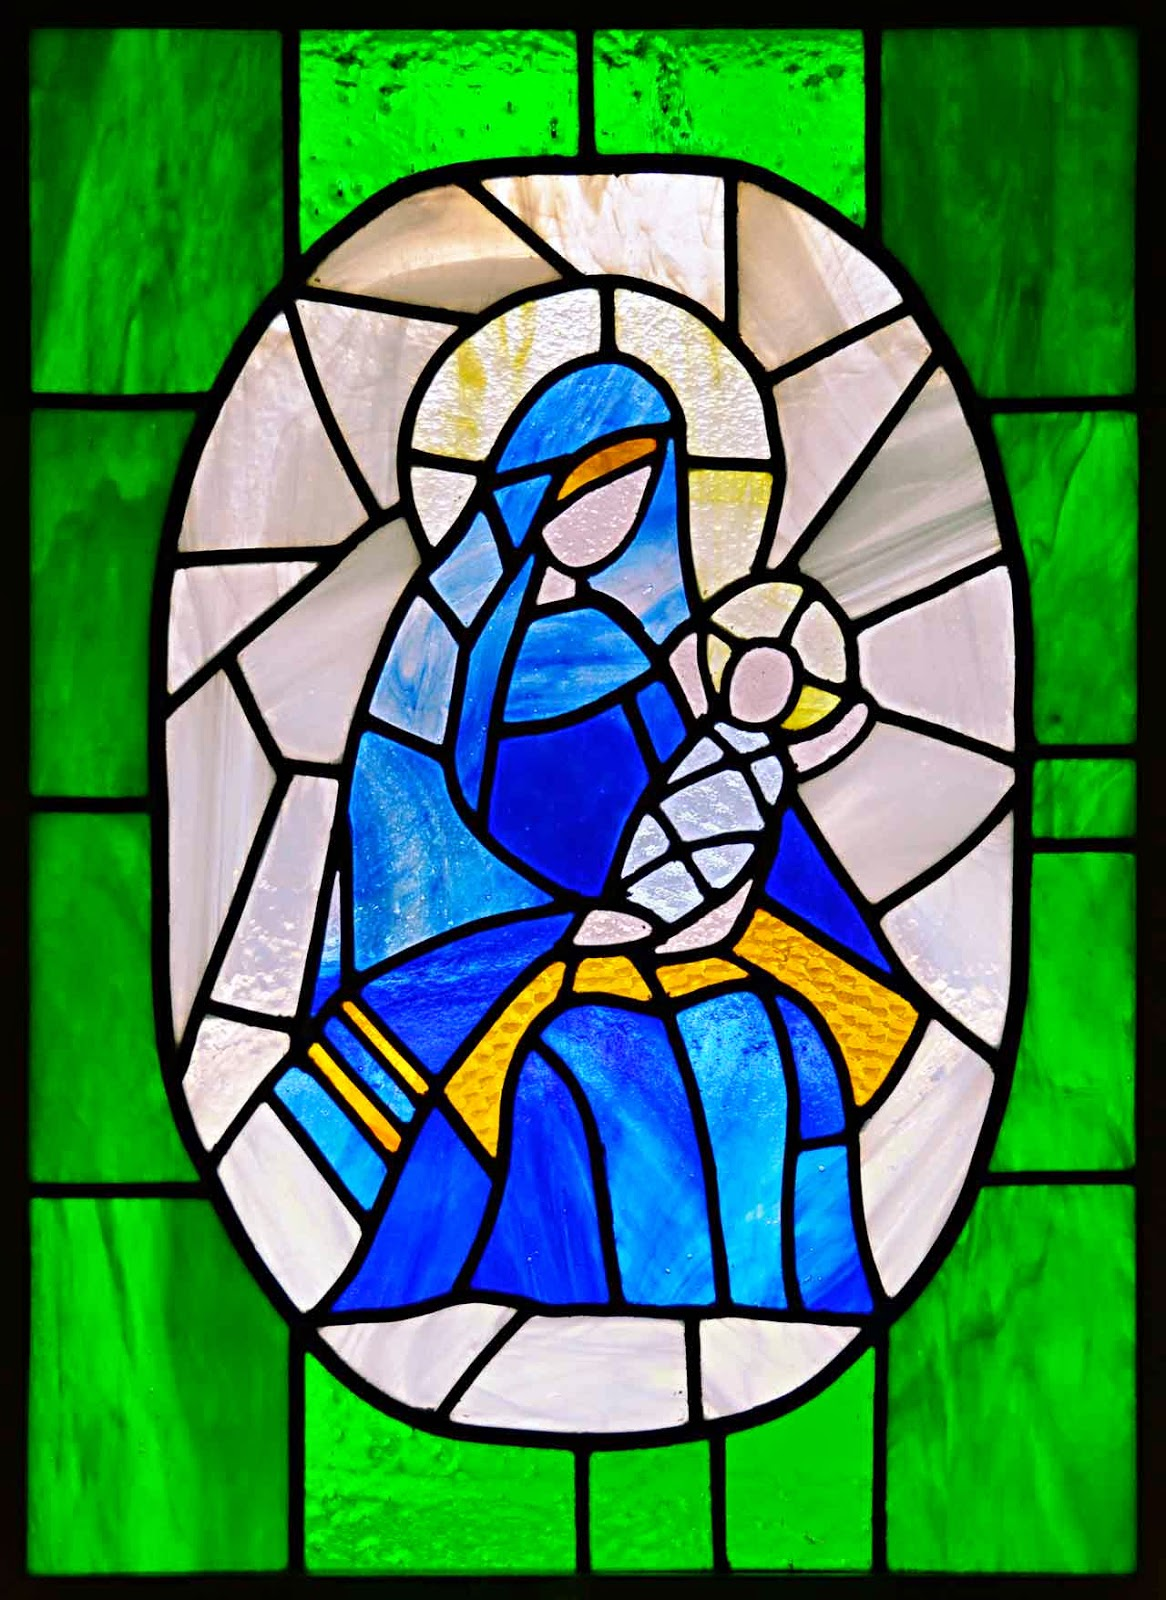 madonna and child stained glass window by Marion Grisa